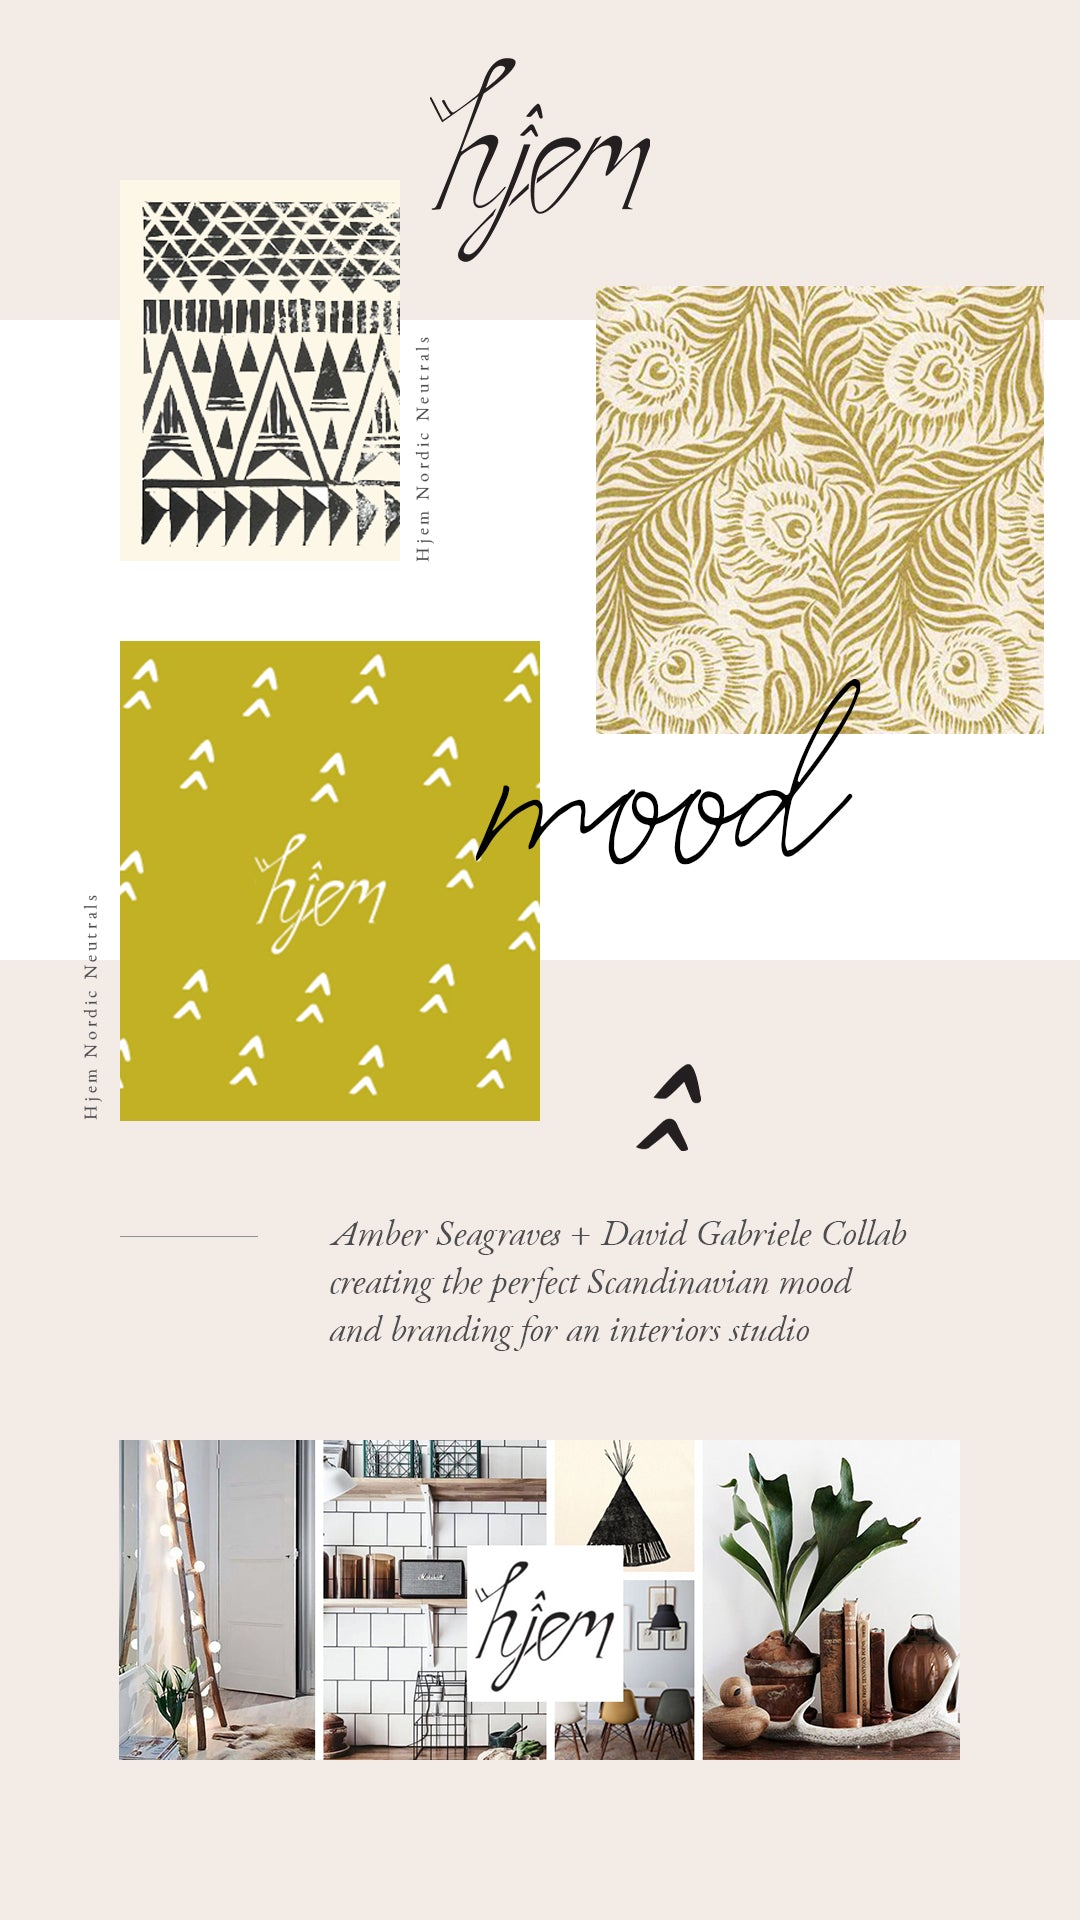 Hjem Design Brand Board by Amber Seagraves Design Studio Web Design Ecommerce Design Branding Design Logo Design Graphic Design Product Design Lifestyle Companies Creative Agency Los Angeles St. Louis Saint Louis